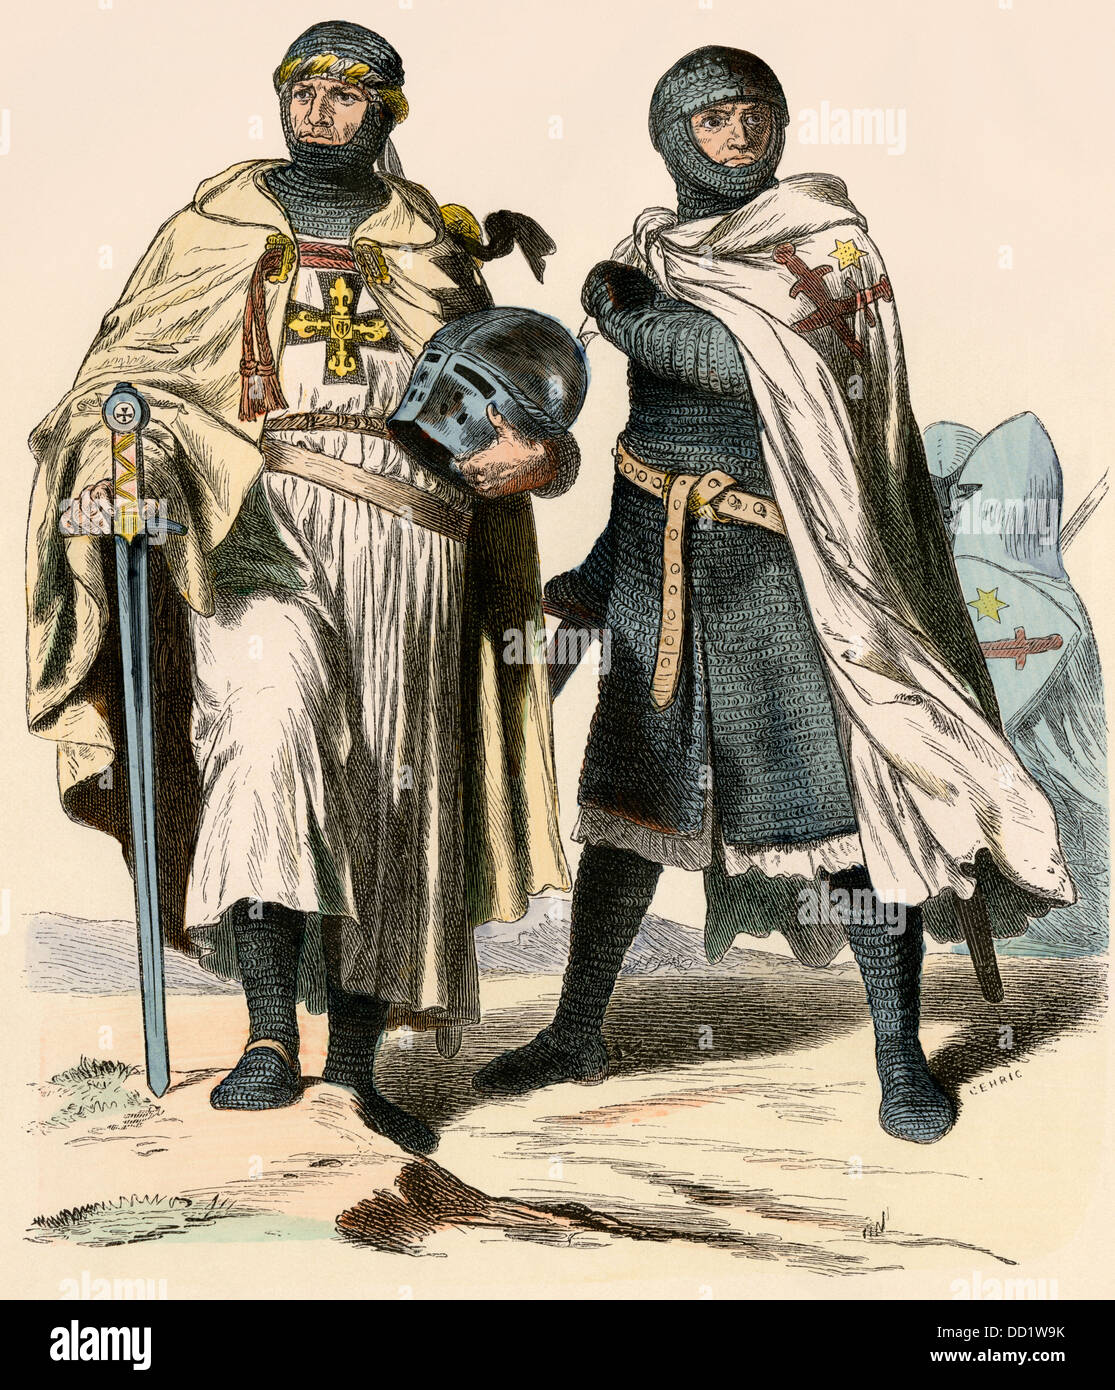 Teutonic Knights during the time of the Crusades. Hand-colored print - Stock Image